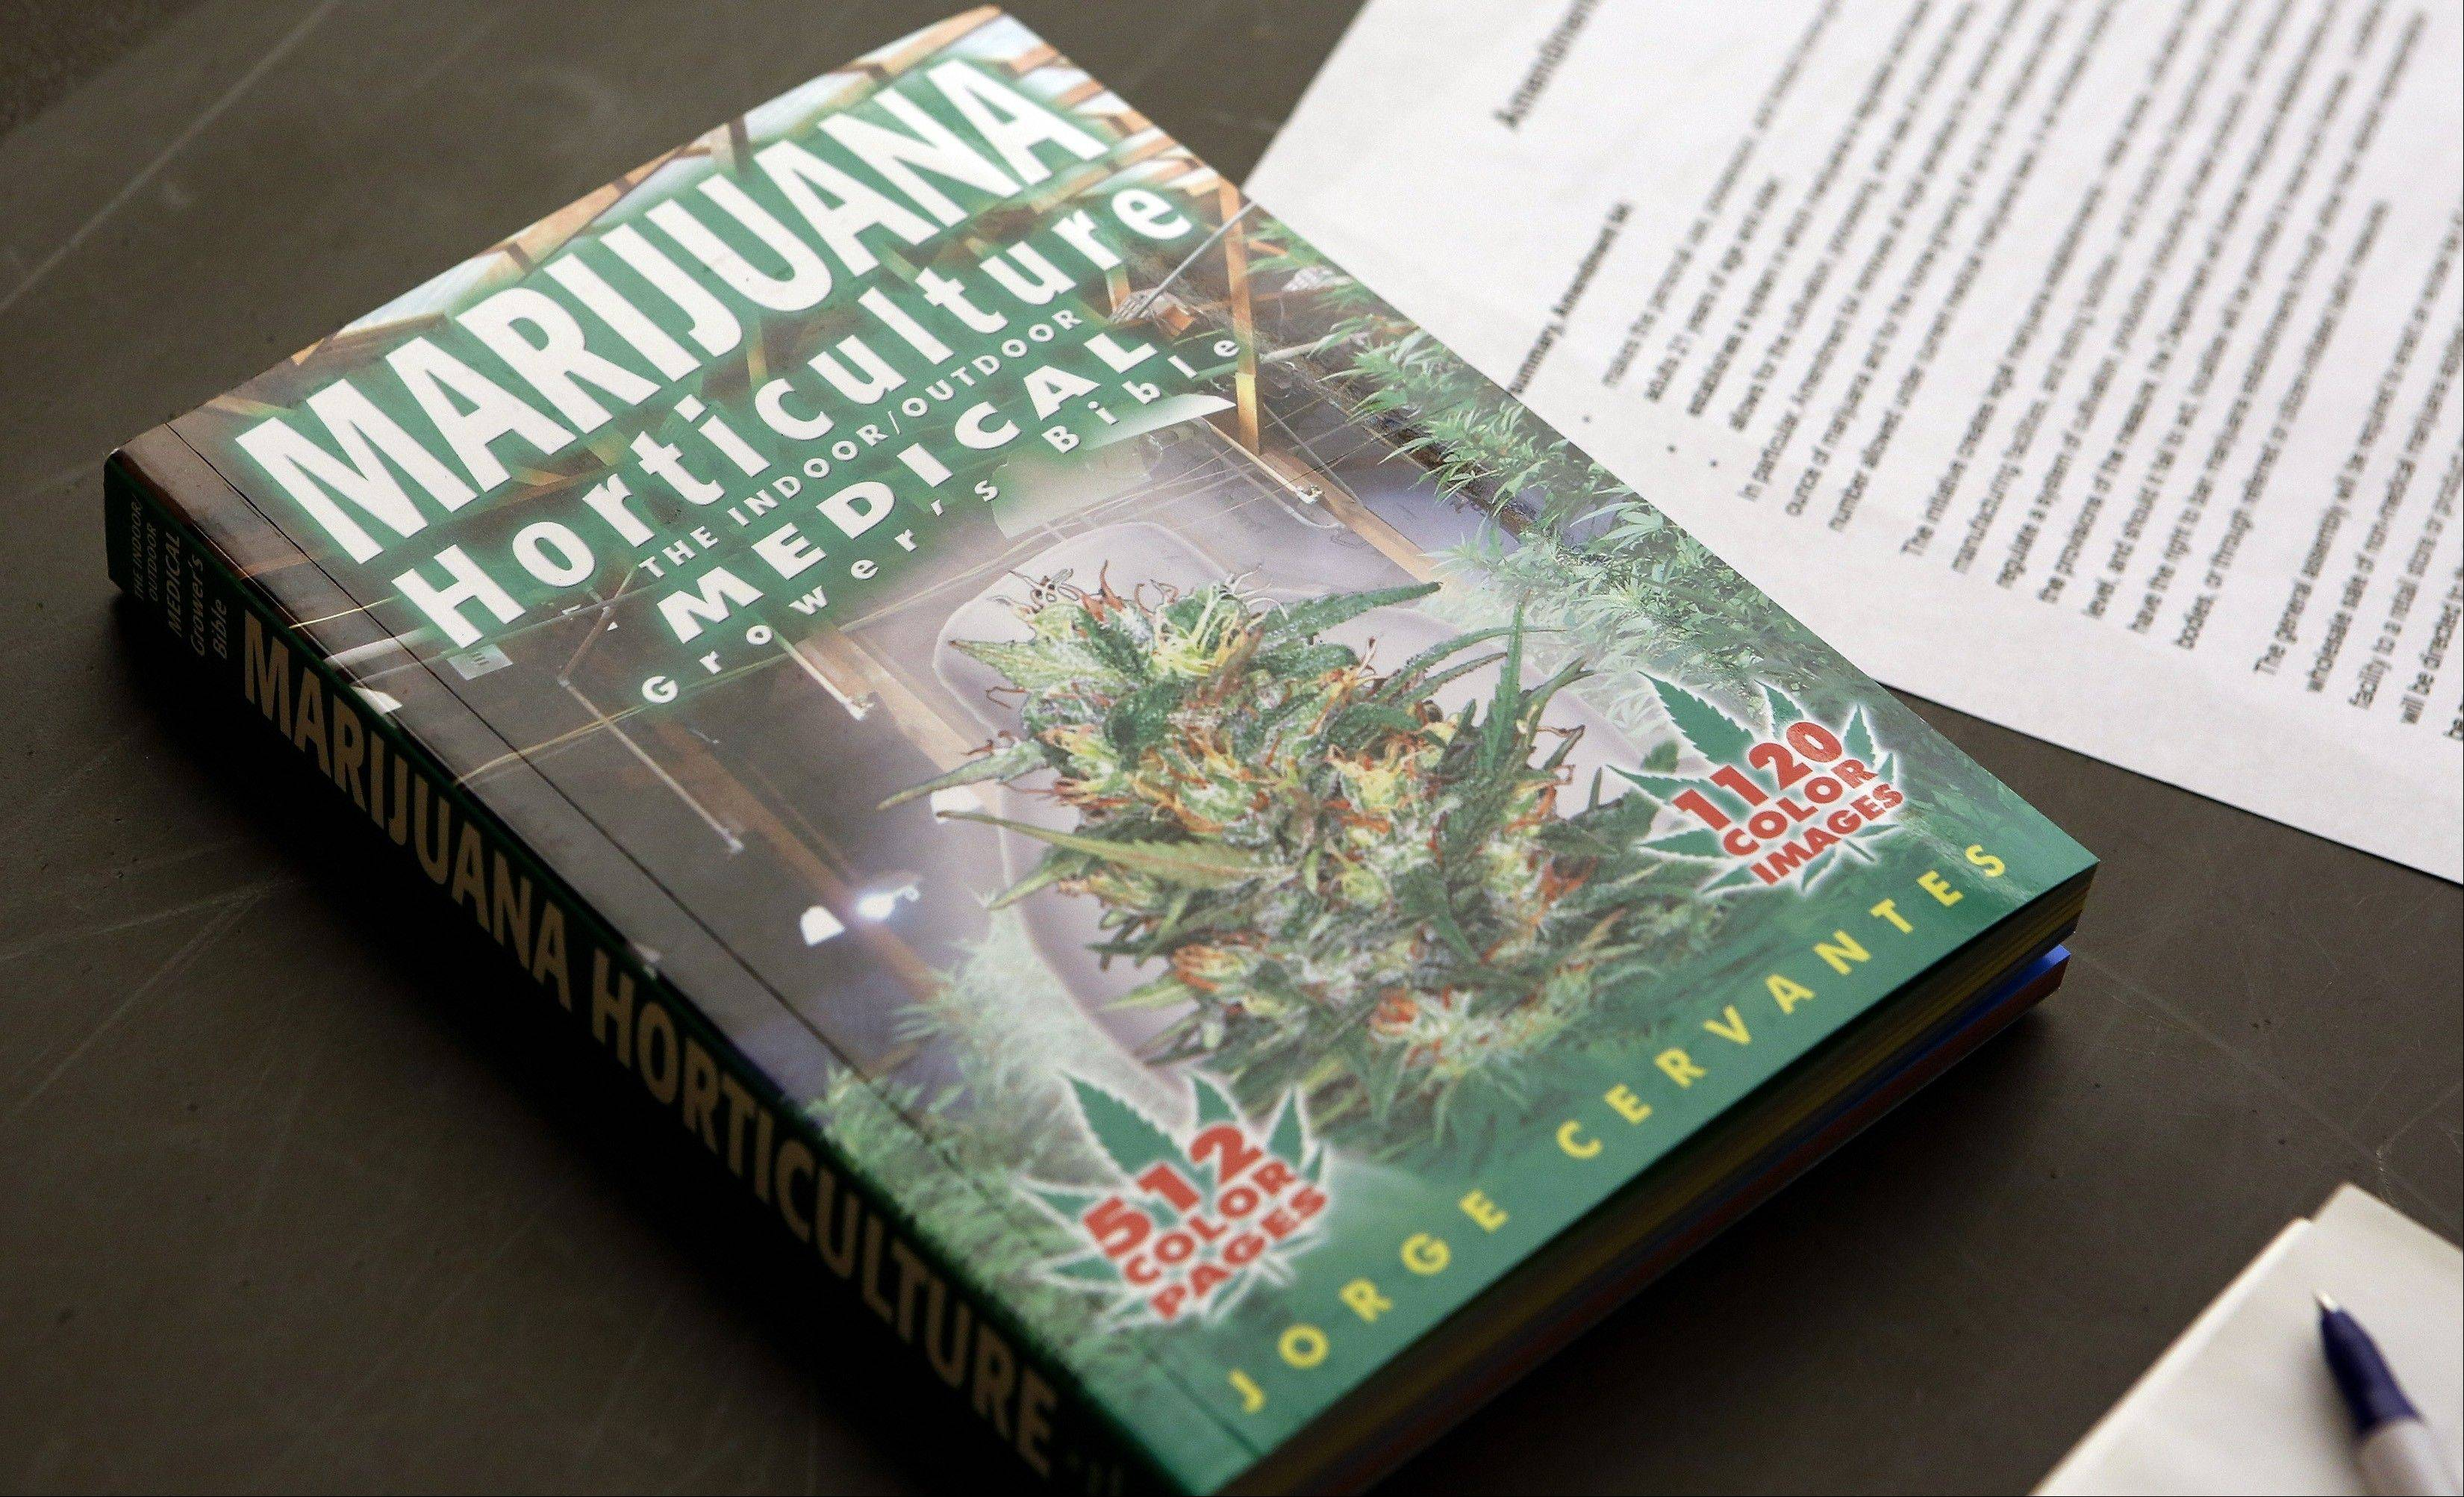 A textbook on Marijuana Horticulture sits on a desk during the first class at the THC University in Denver.